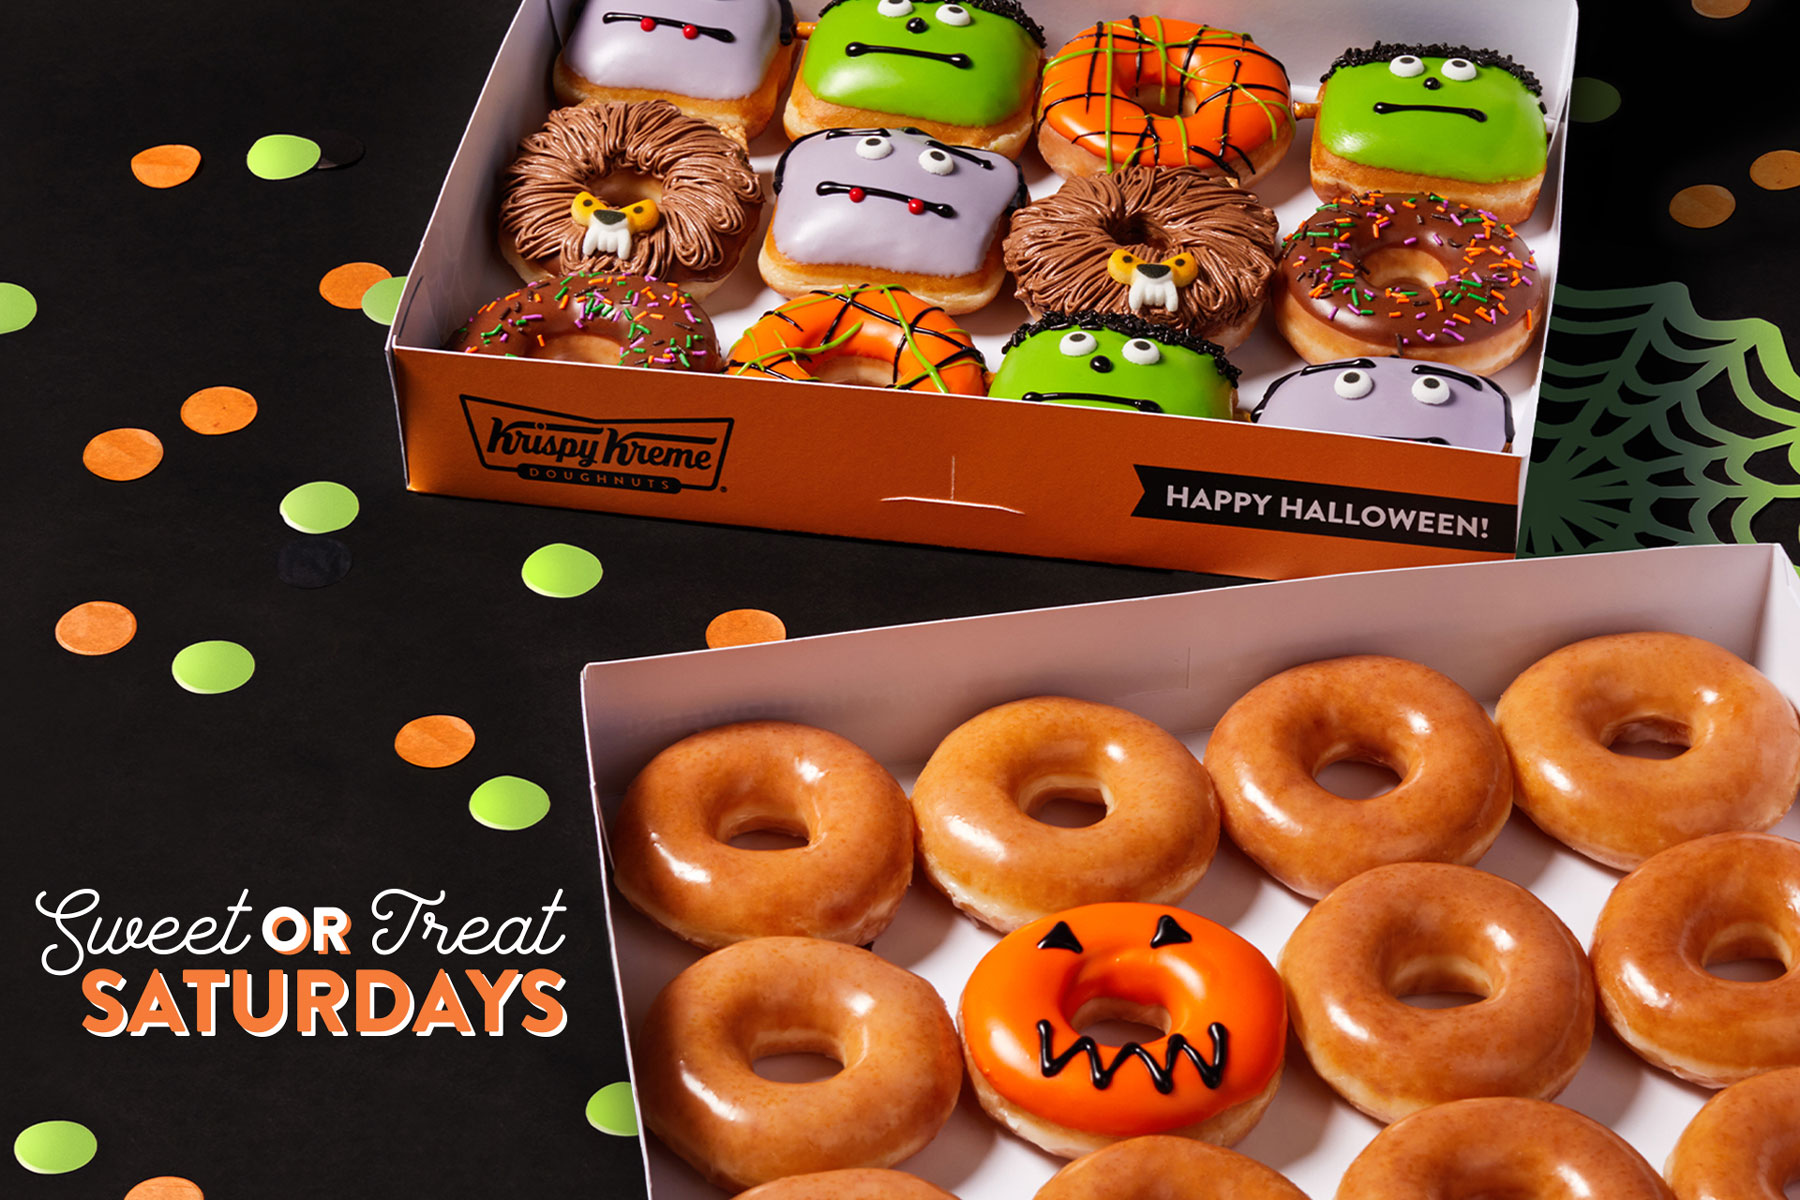 Krispy Kreme 'Sweet or Treat' doughnuts